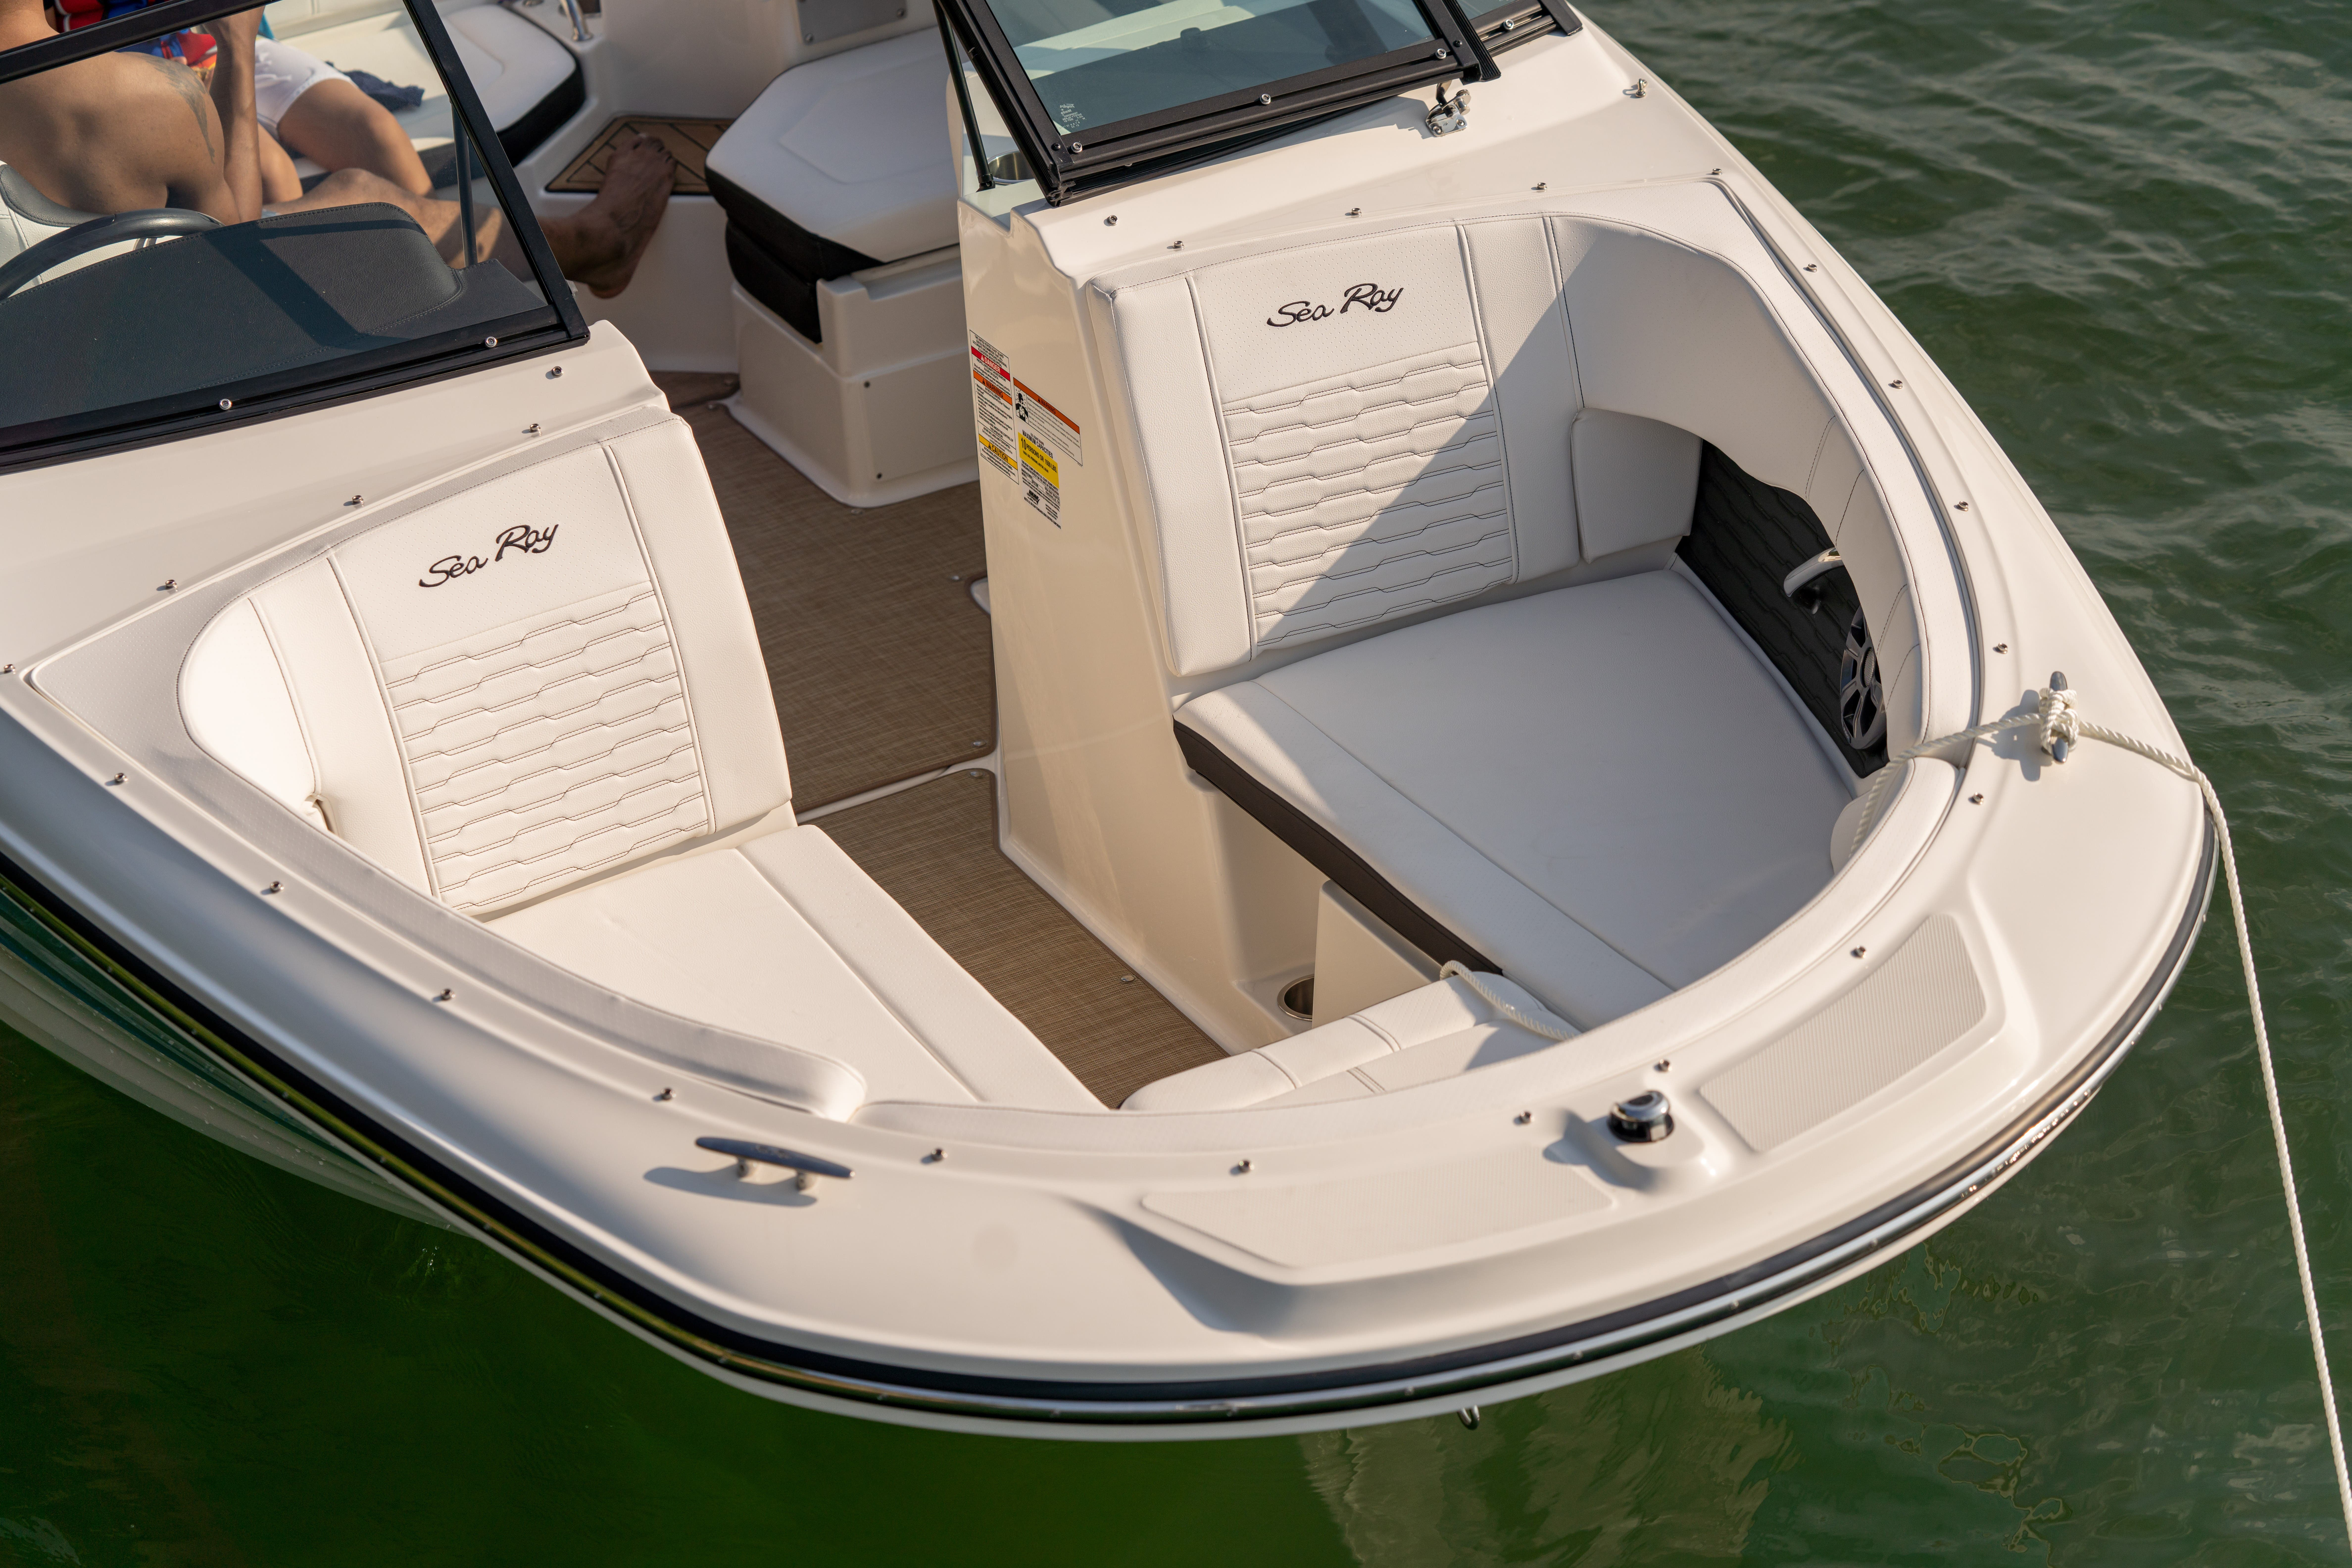 2022 Sea Ray boat for sale, model of the boat is 190SPX & Image # 3 of 7